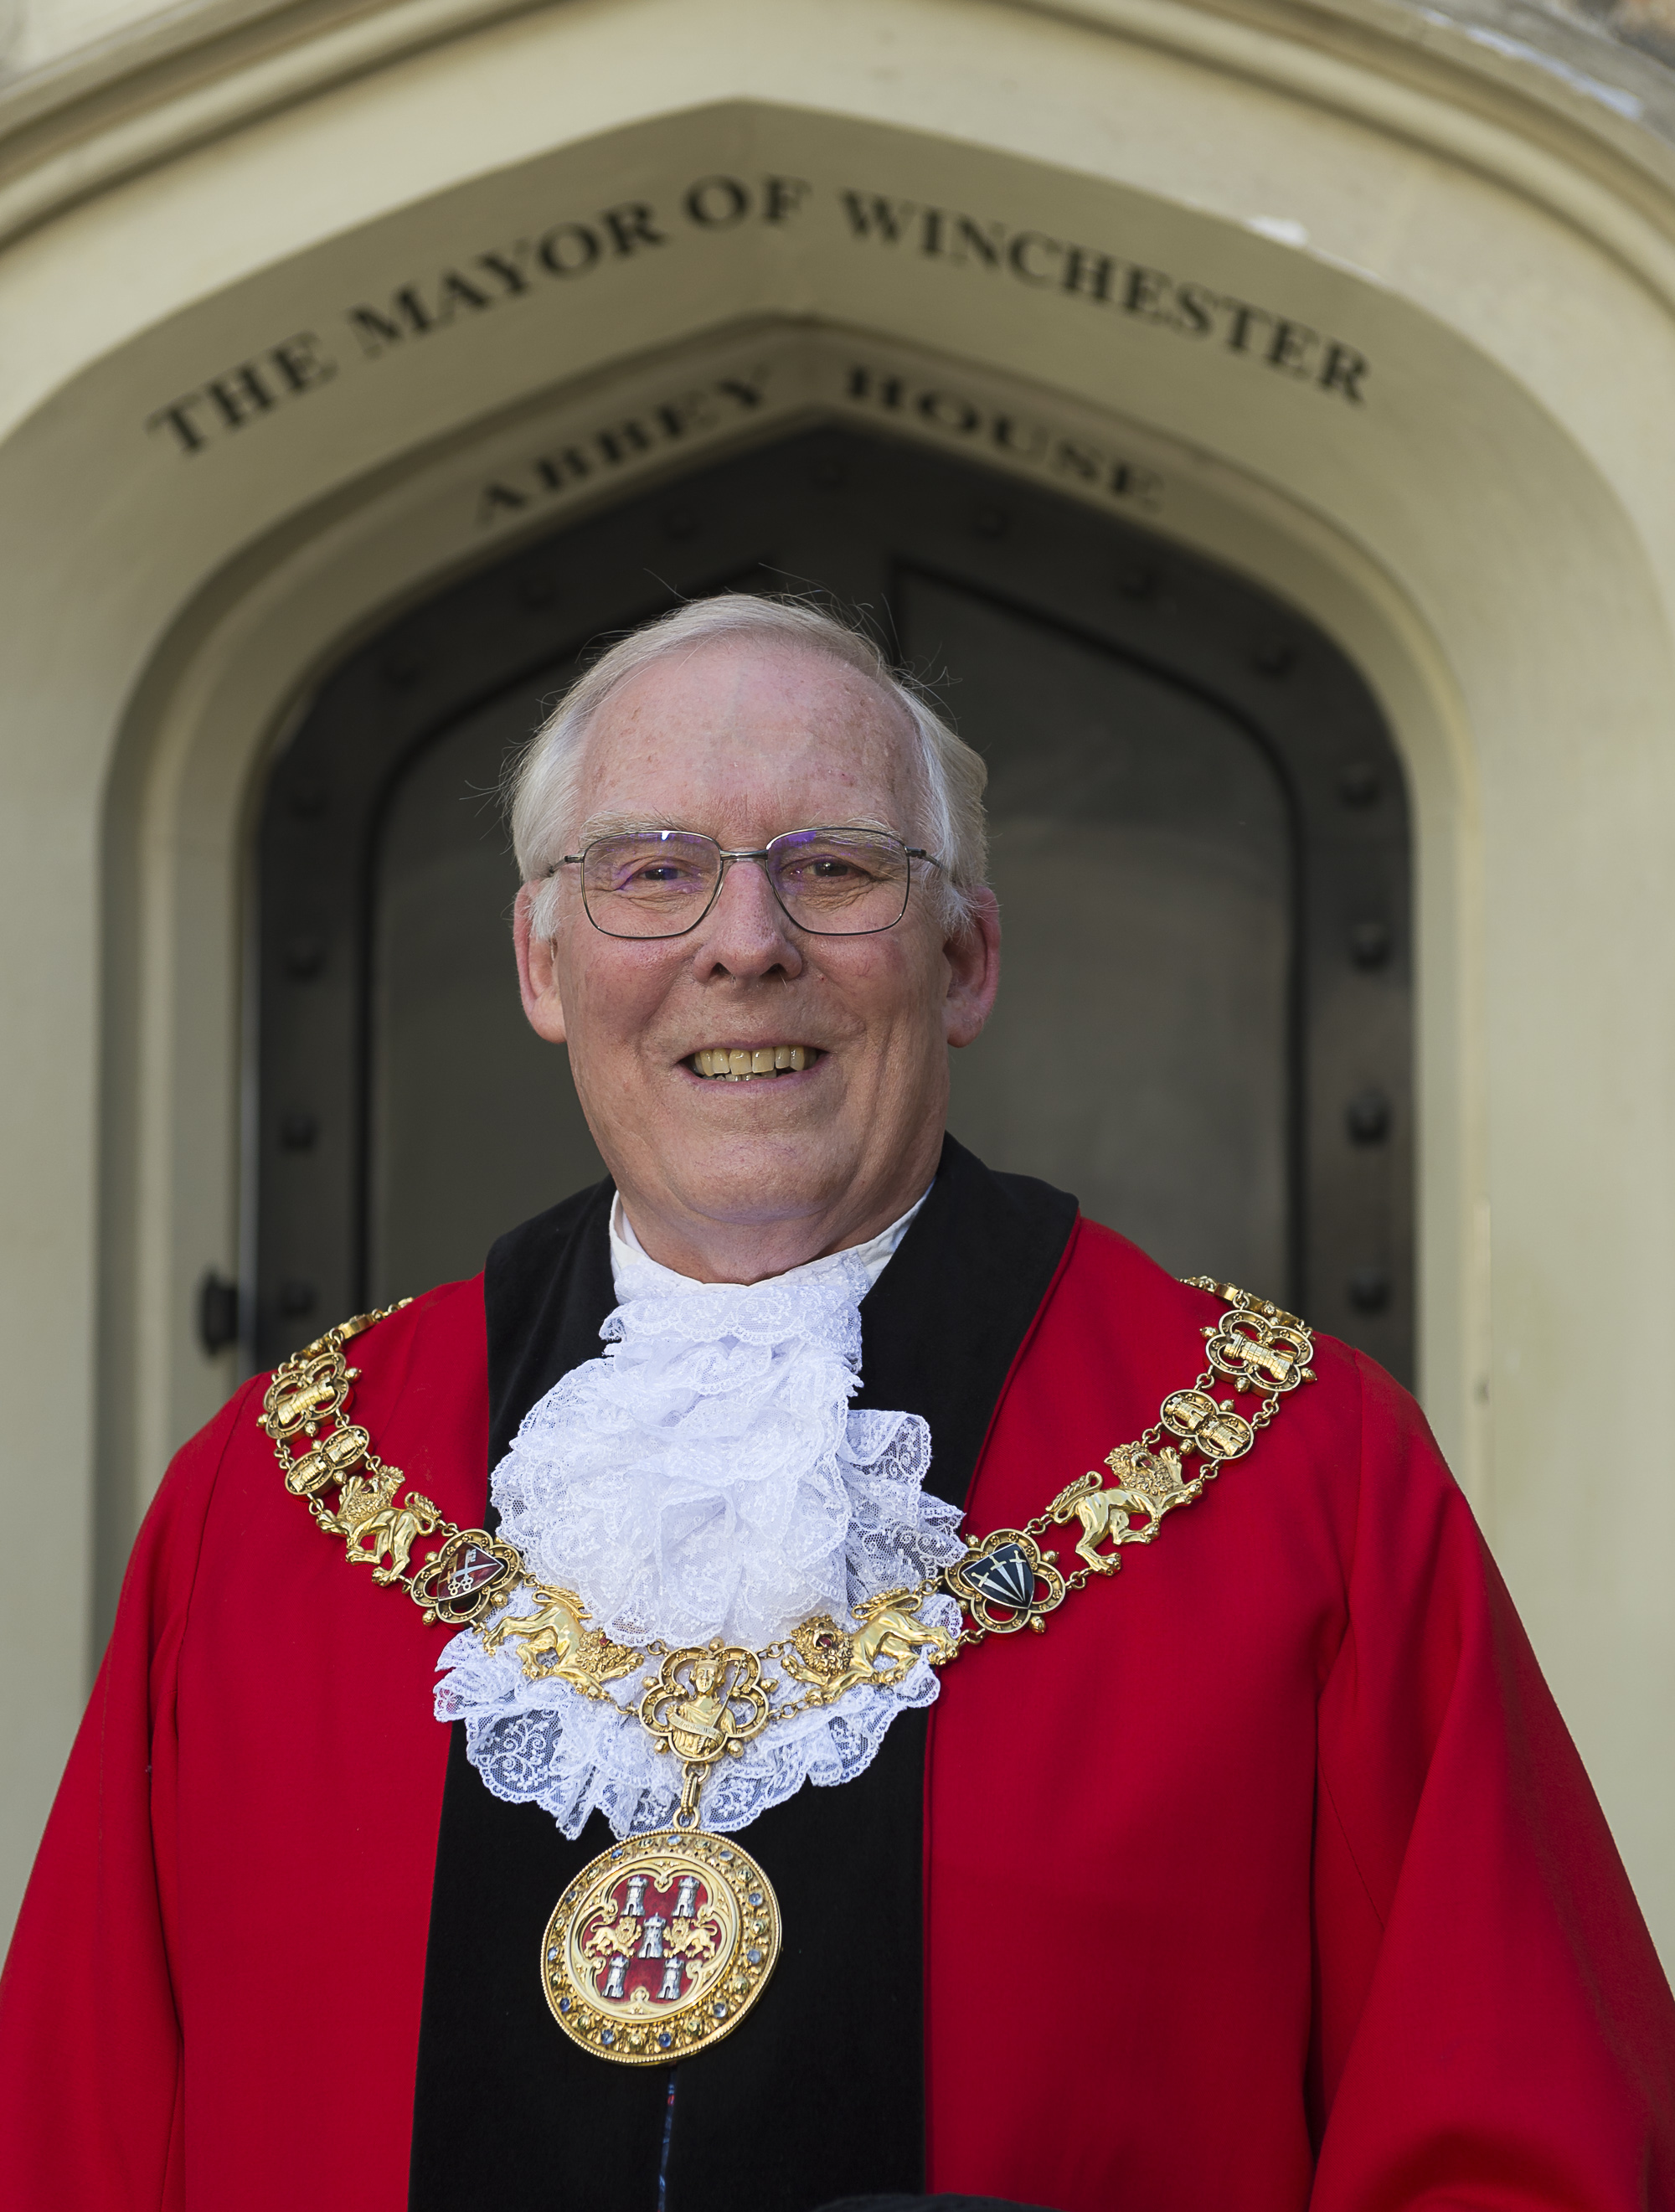 Mayor of Winchester, Cllr Frank Pearson